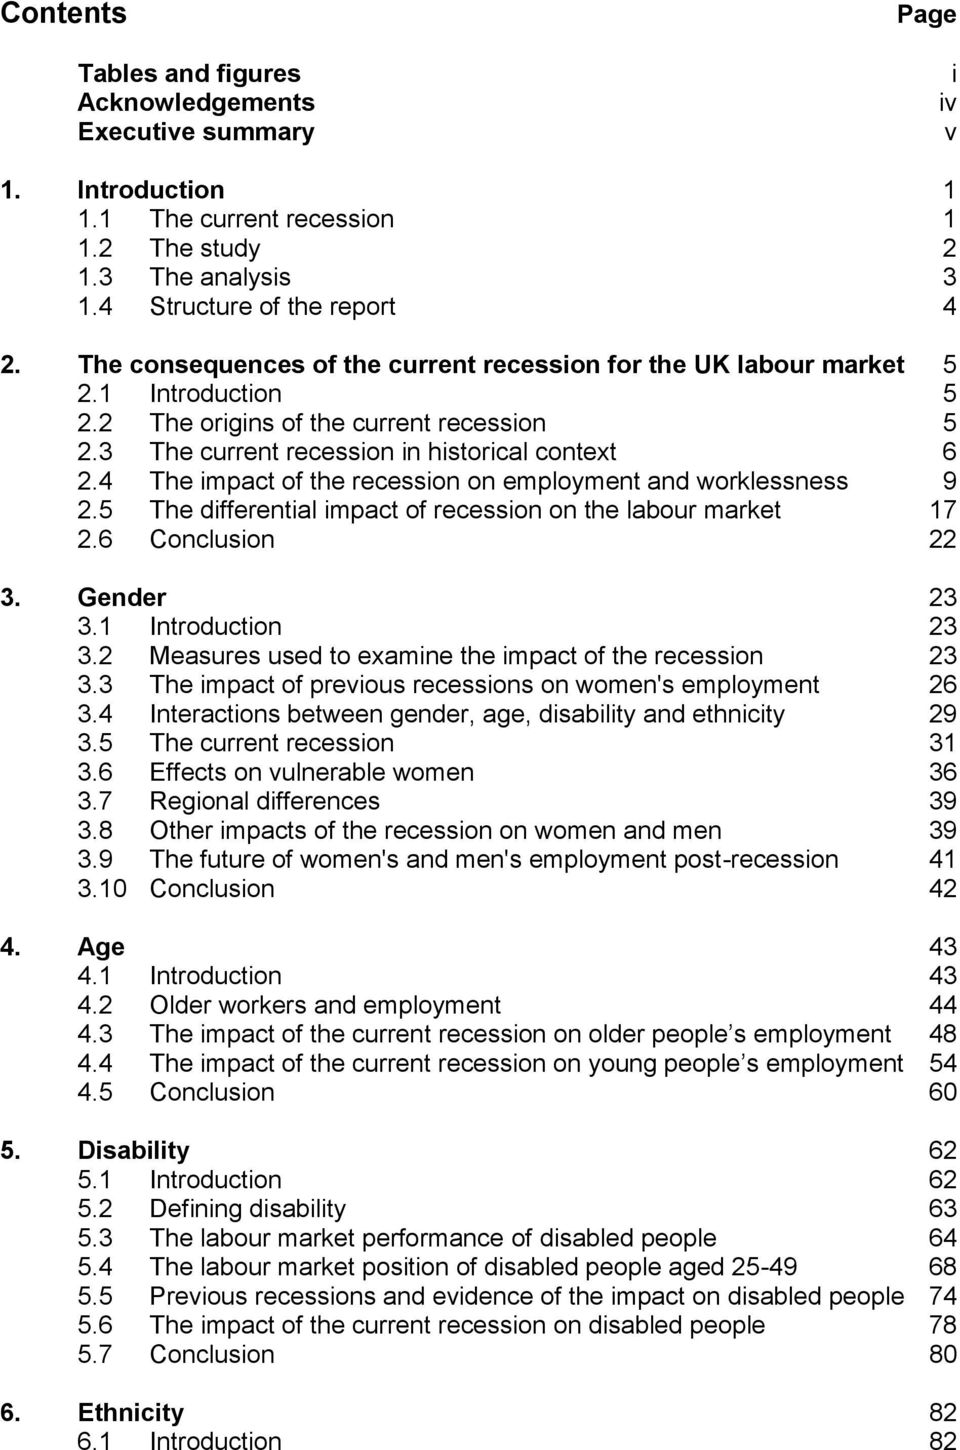 4 The impact of the recession on employment and worklessness 9 2.5 The differential impact of recession on the labour market 17 2.6 Conclusion 22 3. Gender 23 3.1 Introduction 23 3.